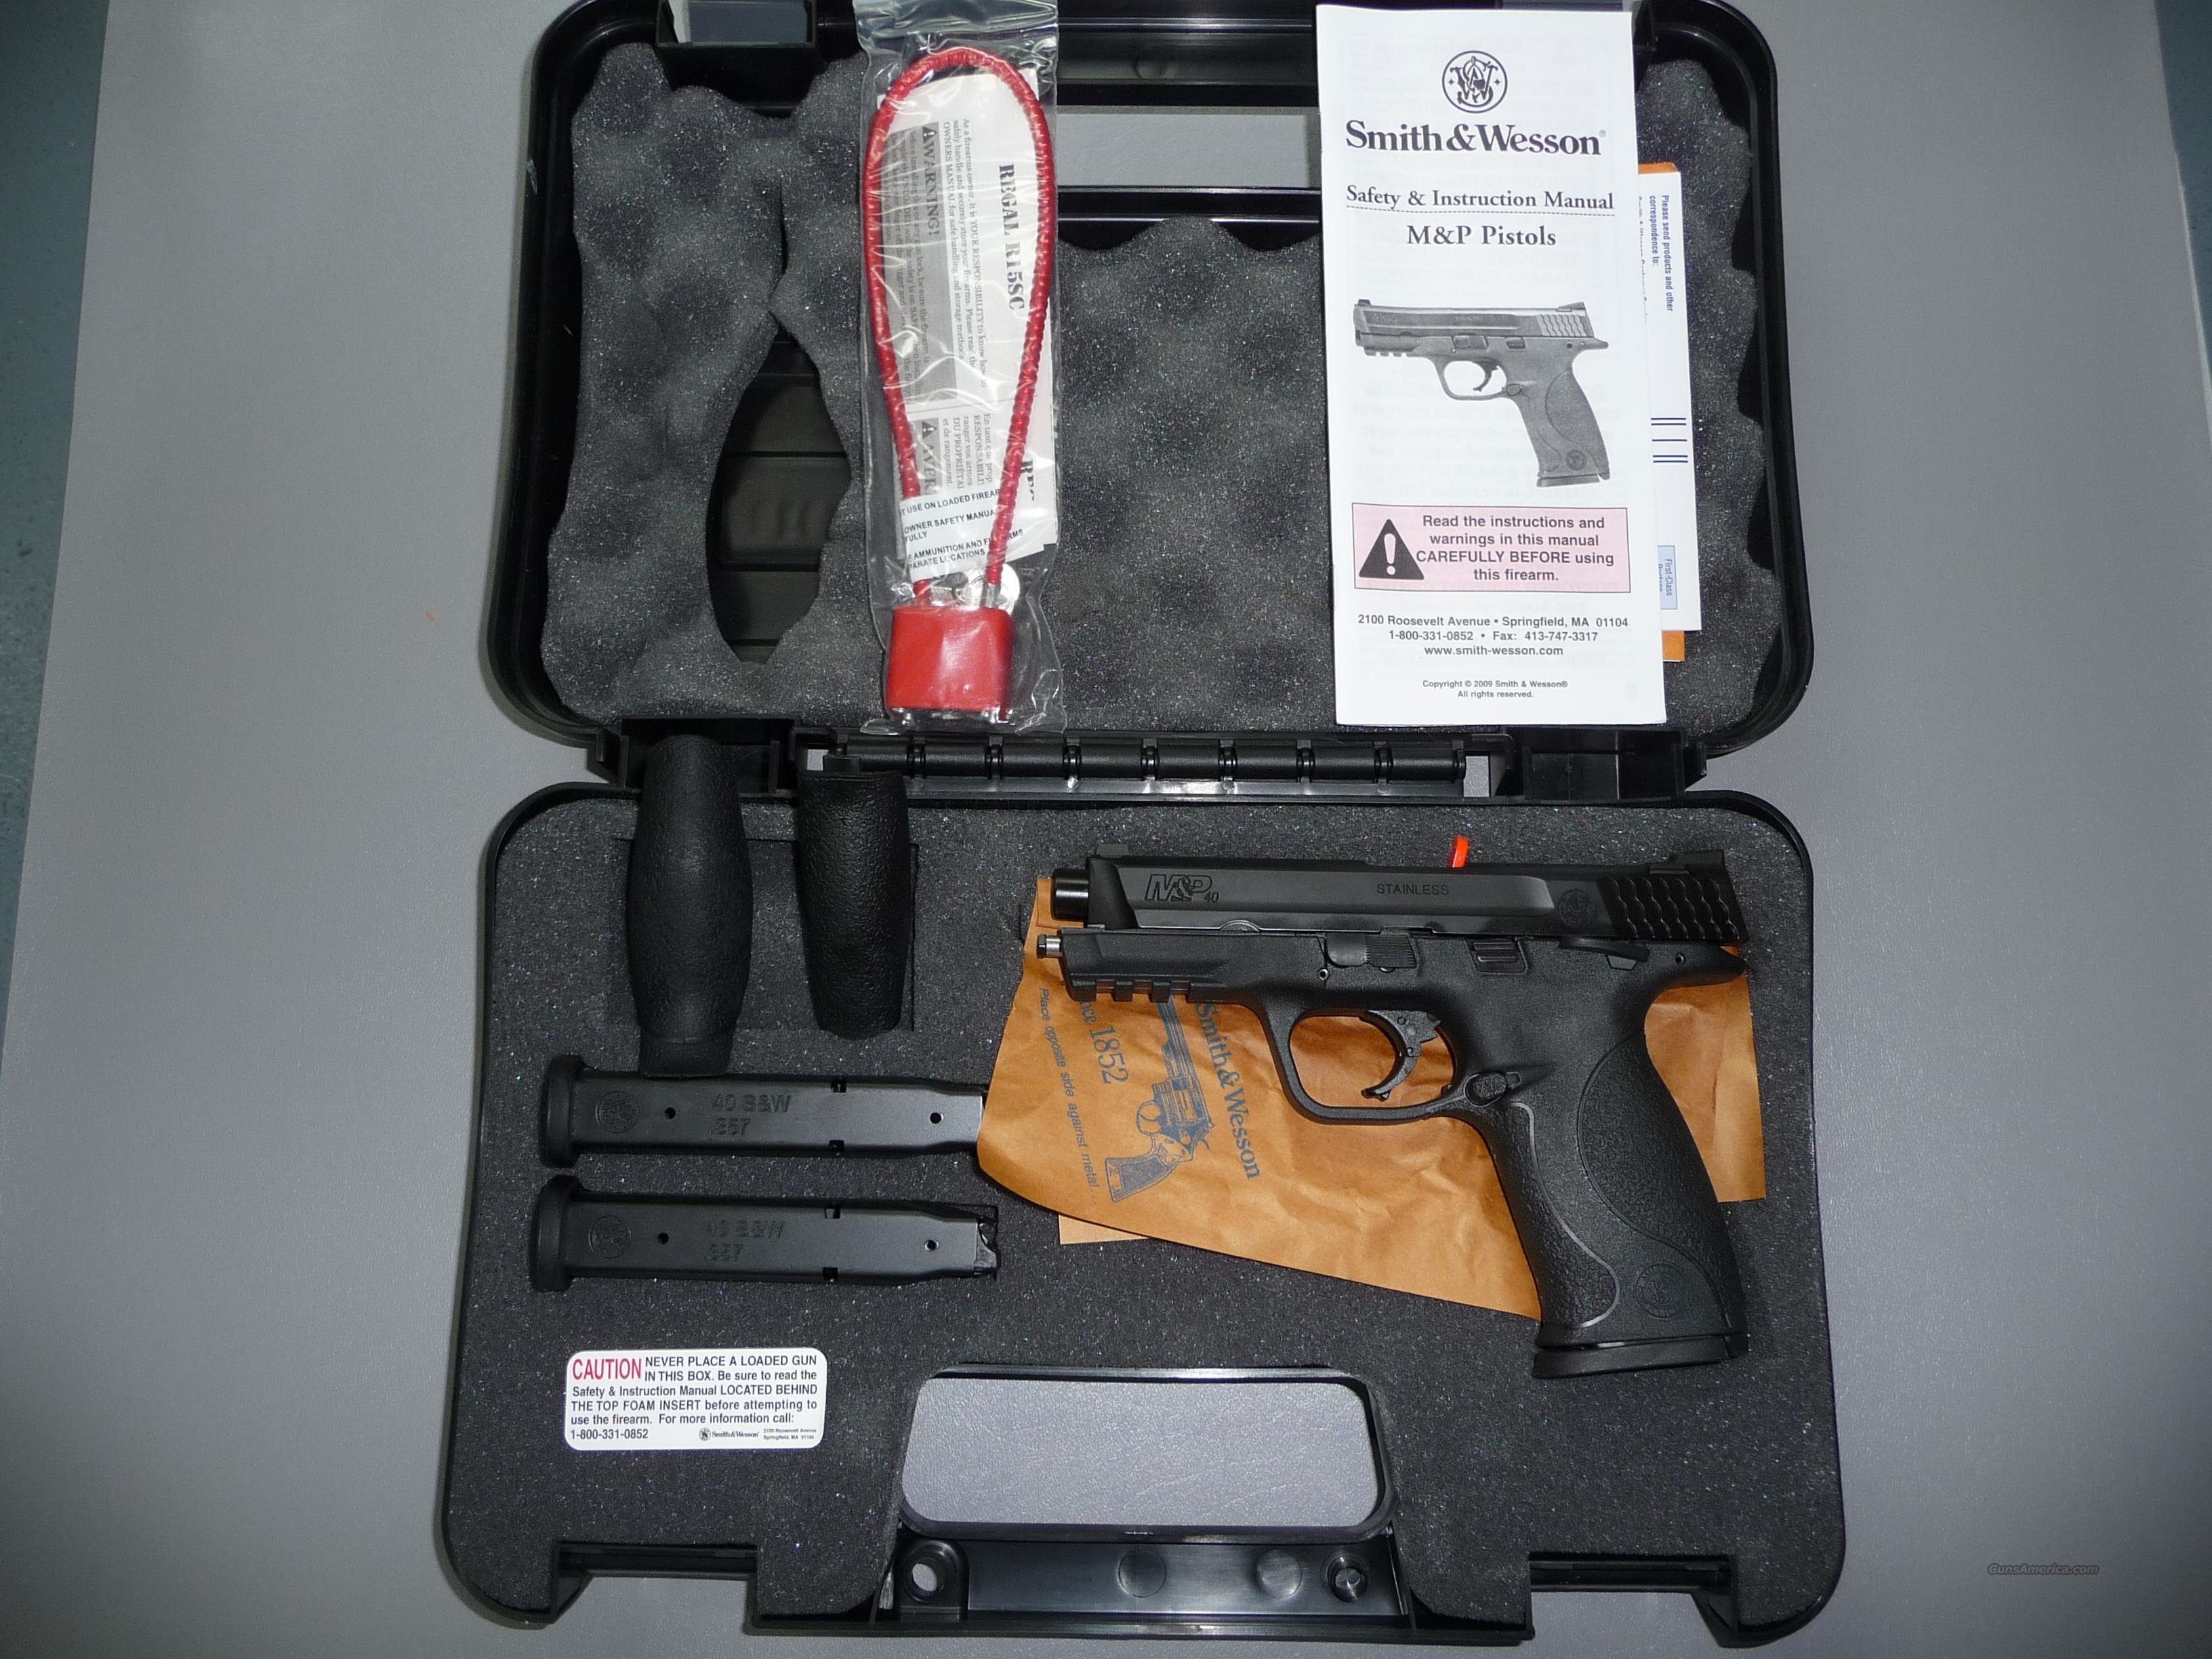 NEW Smith & Wesson M&P .40 Caliber S&W Pistol  Guns > Pistols > Smith & Wesson Pistols - Autos > Polymer Frame